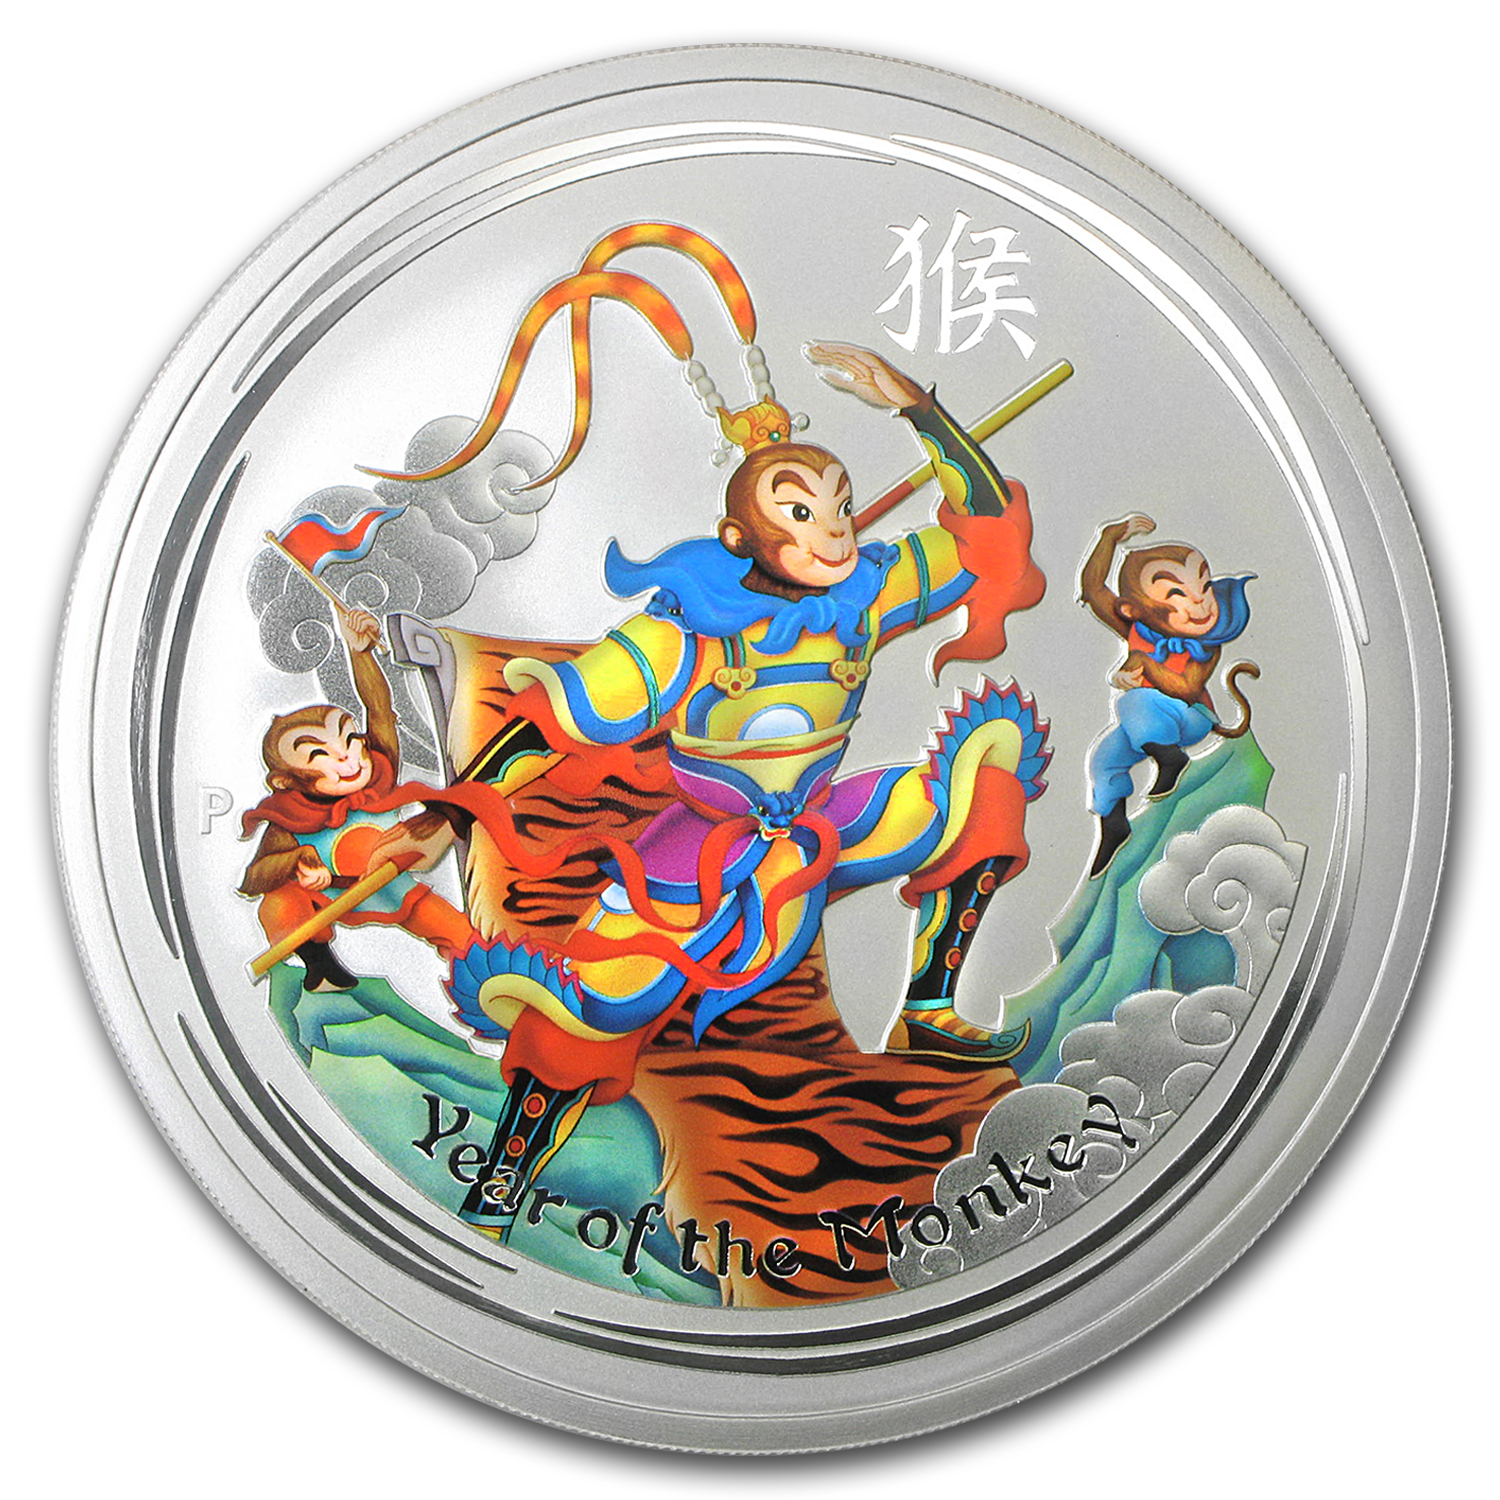 2016 Australia 1 oz Silver Lunar Monkey King Colorized BU